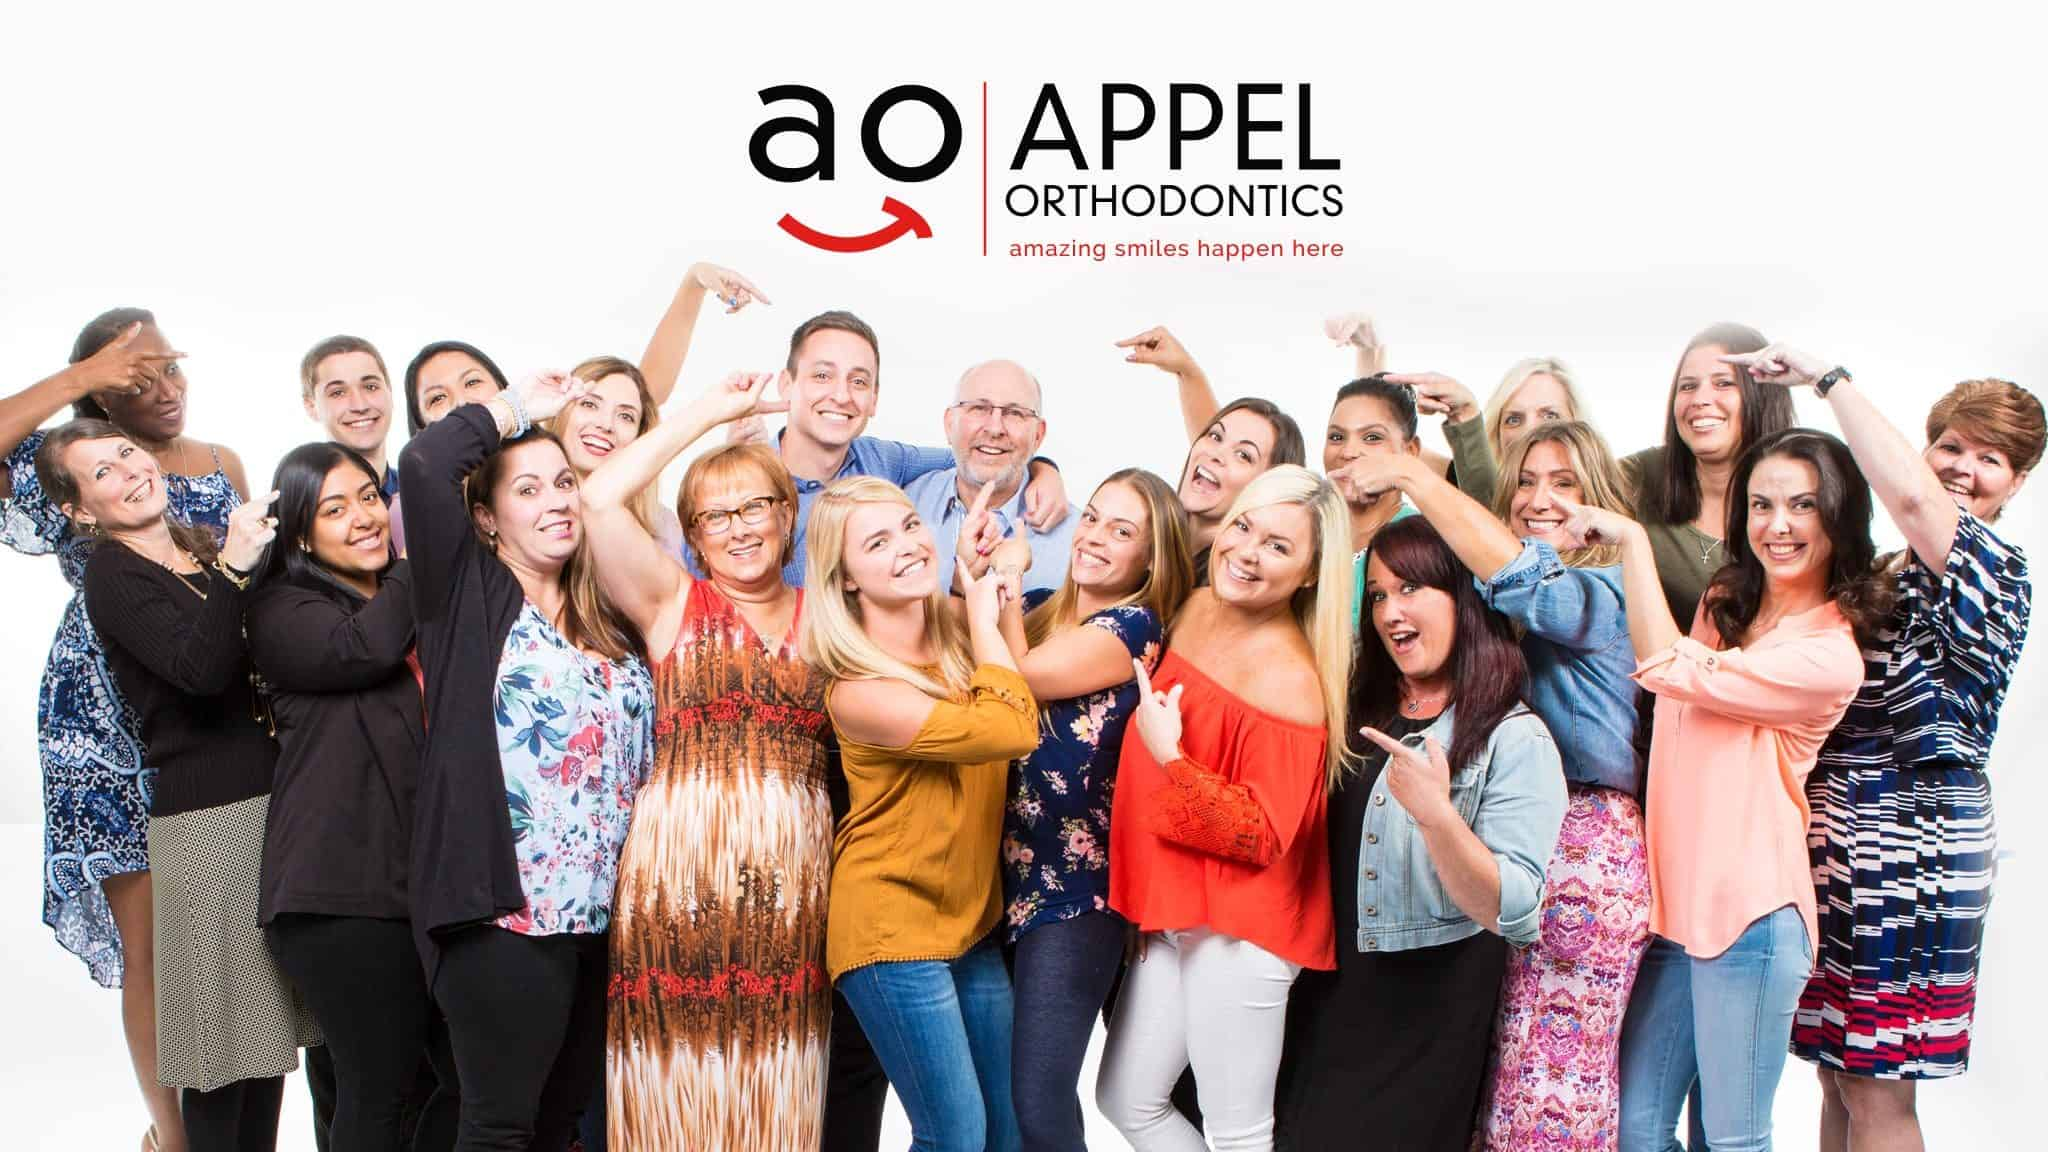 Appel Staff Normal REDO w logo funny 1 2048x1152 - Meet the Appel Orthodontics Team